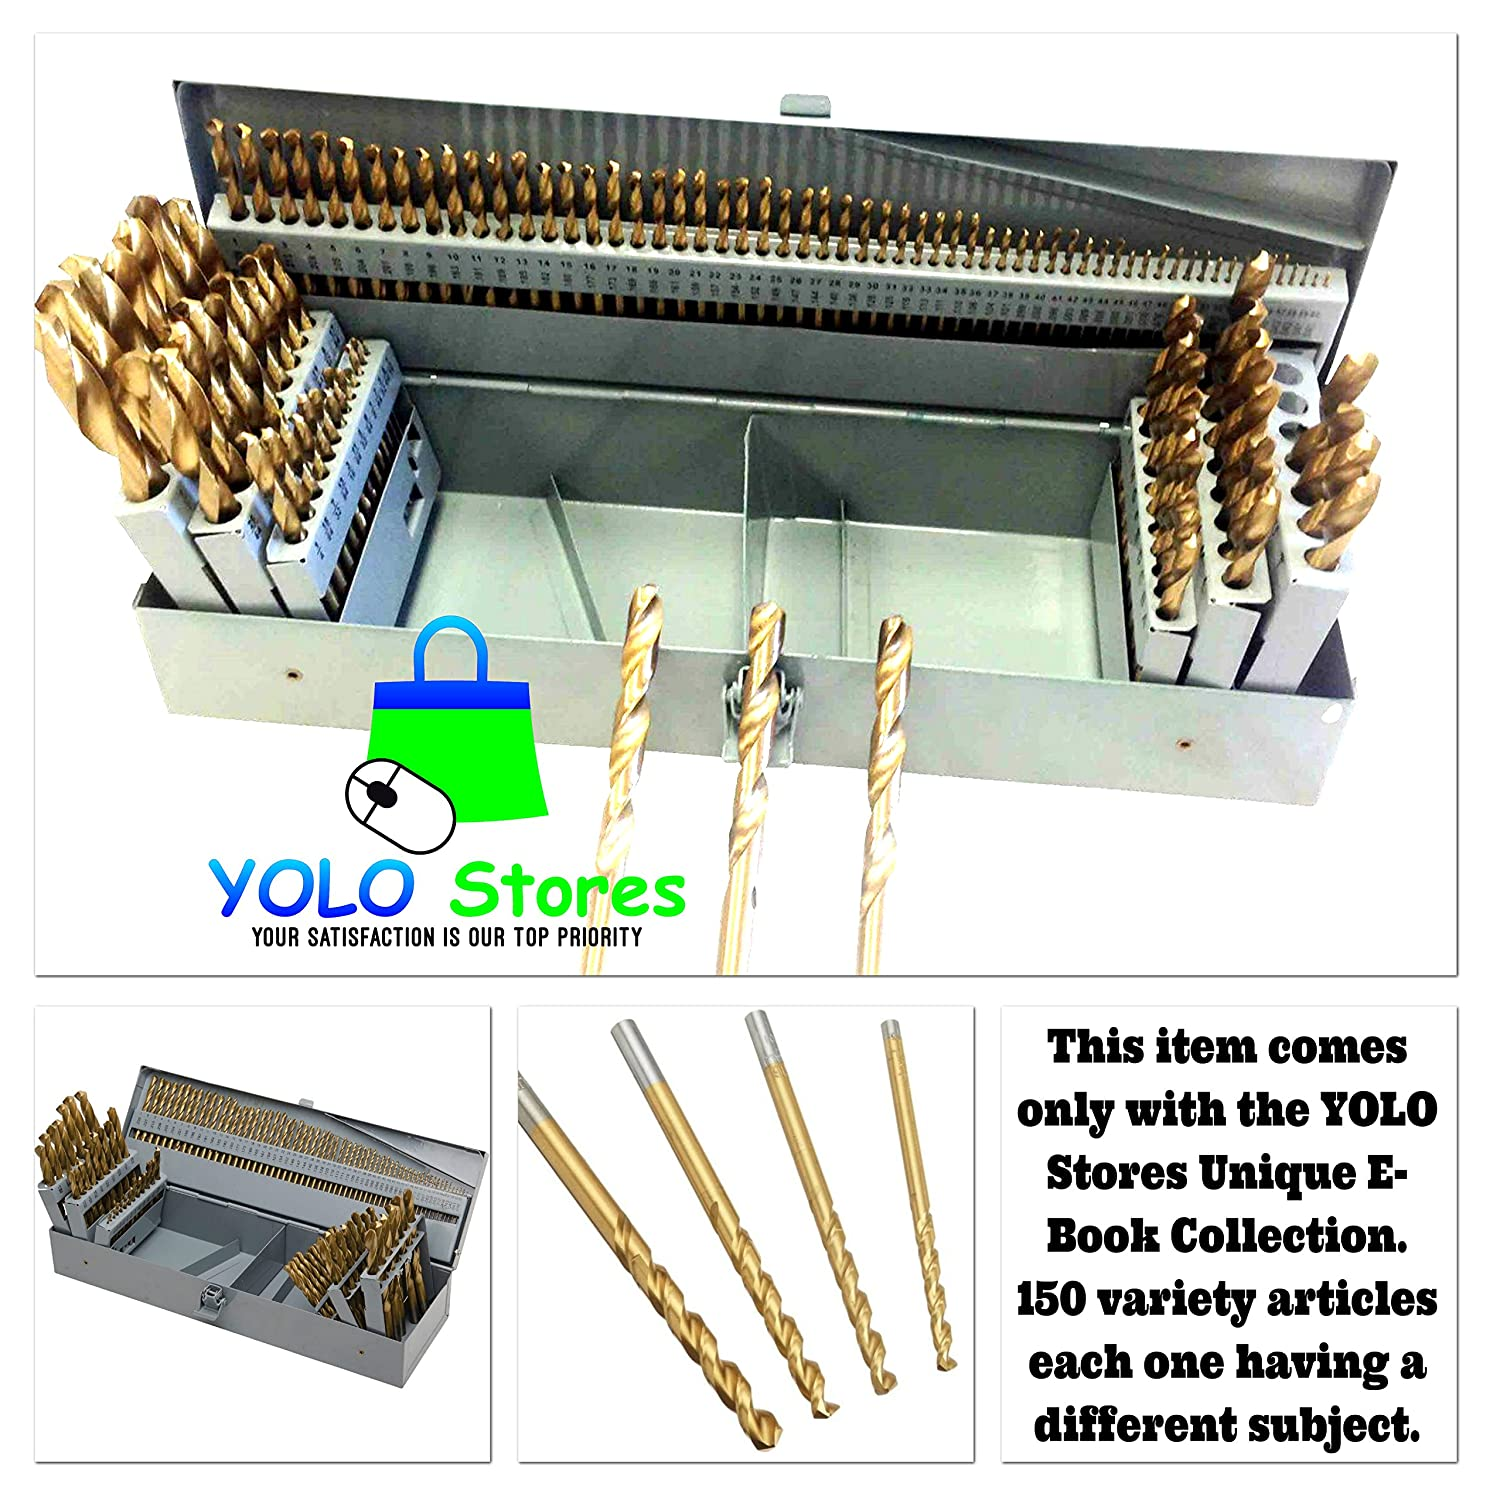 115pc Drill Bit Set Titanium w// Metal Index Case HSS Fractional Number Letter Steel Portable By YOLO Stores